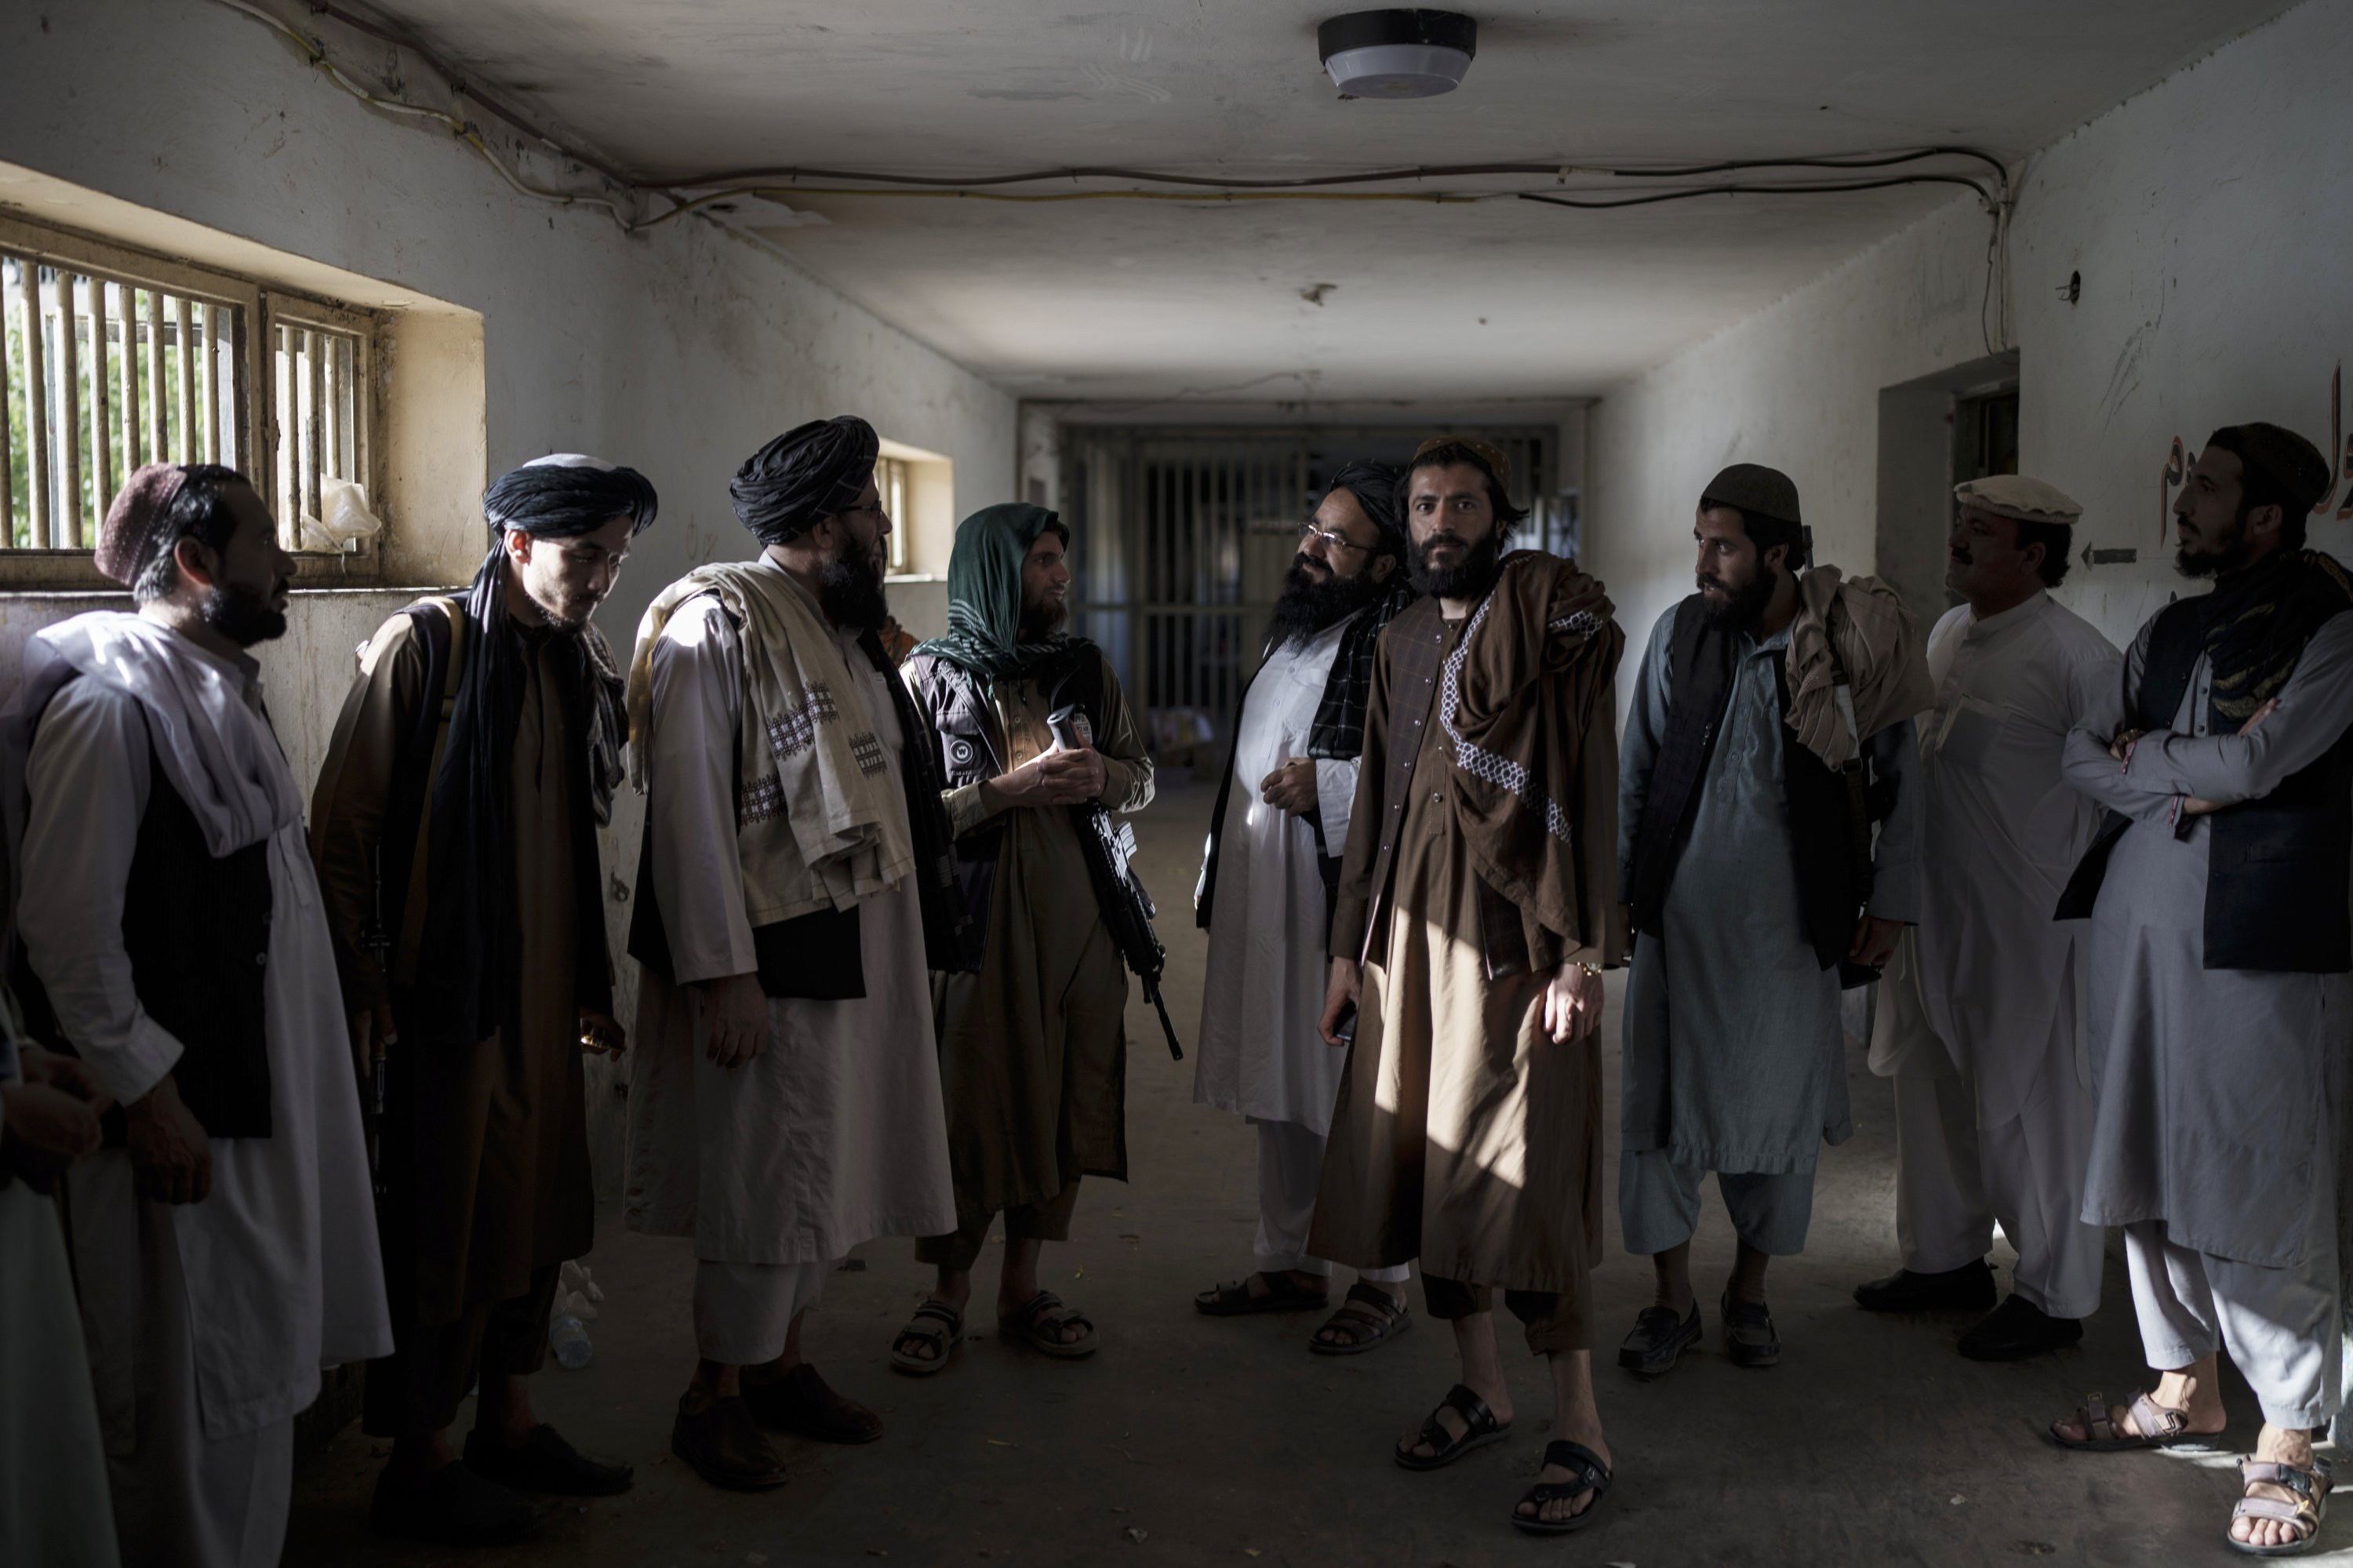 Taliban fighters, some former prisoners, chat in an empty area of the Pul-e-Charkhi prison in Kabul, Afghanistan, Sept. 13, 2021. (AP Photo)